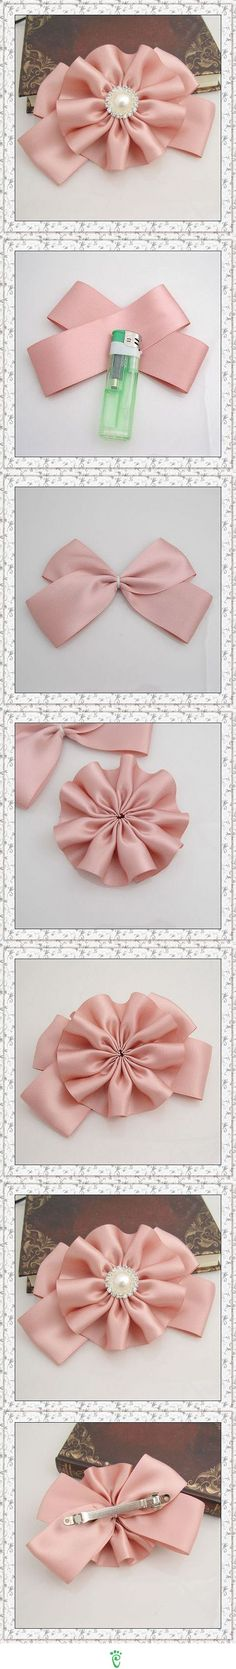 Diy Baby Headbands Ribbon Hair Bow Tutorial New Ideas Ribbon Hair Bows, Diy Hair Bows, Diy Bow, Diy Ribbon, Ribbon Work, Ribbon Crafts, Ribbon Flower, Flower Corsage, Flower Brooch